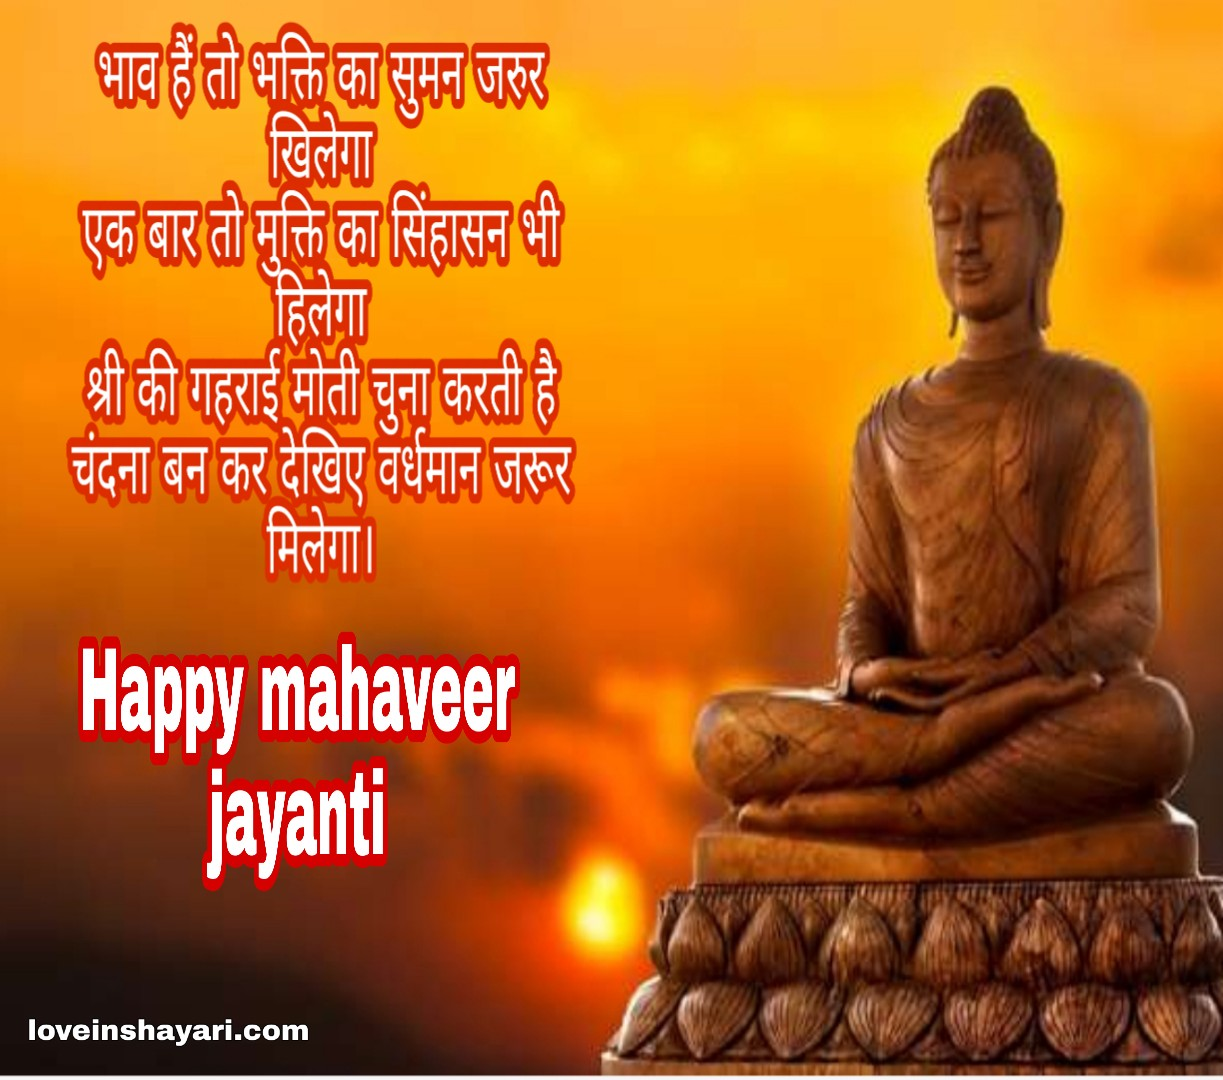 Photo of Mahaveer jayanti wishes shayari quotes message 2020